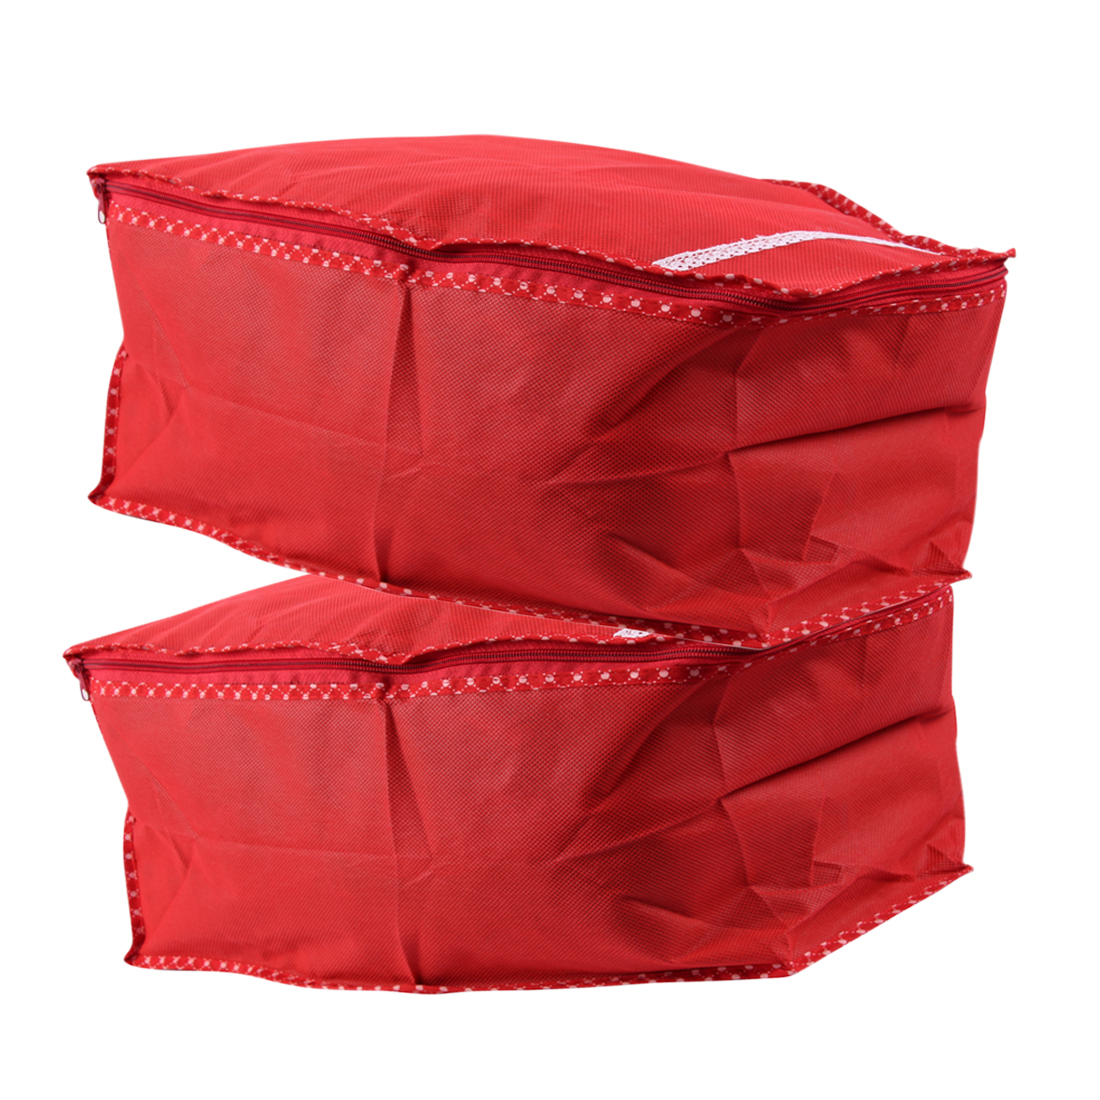 combo of 2 red saree covers which each has the capacity to fill upto 10 15 sarees.